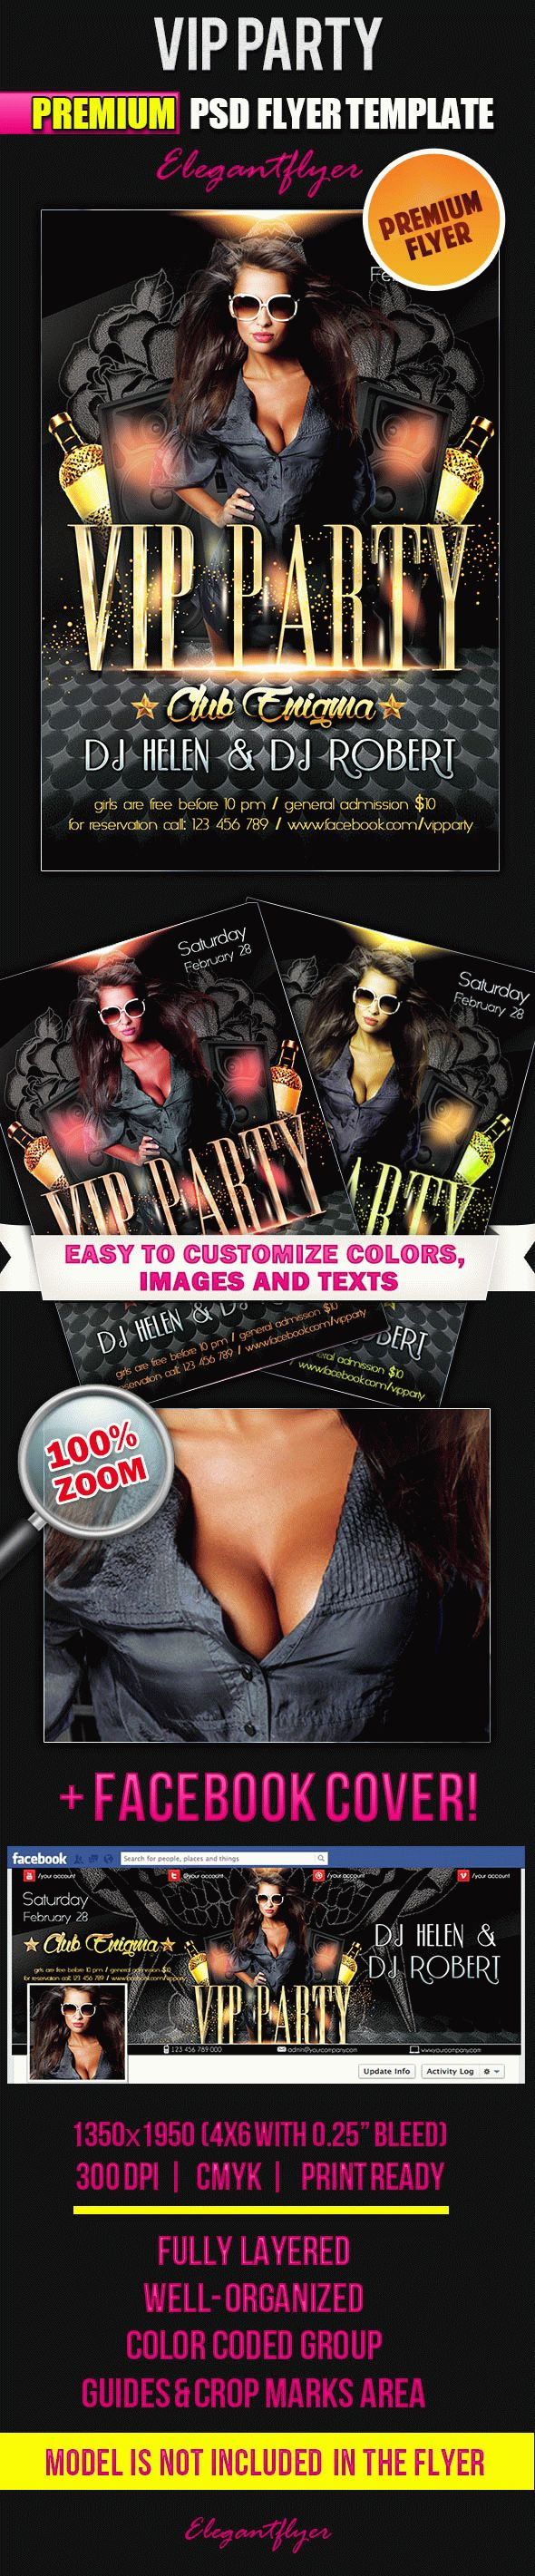 Flyer Template For Vip Party